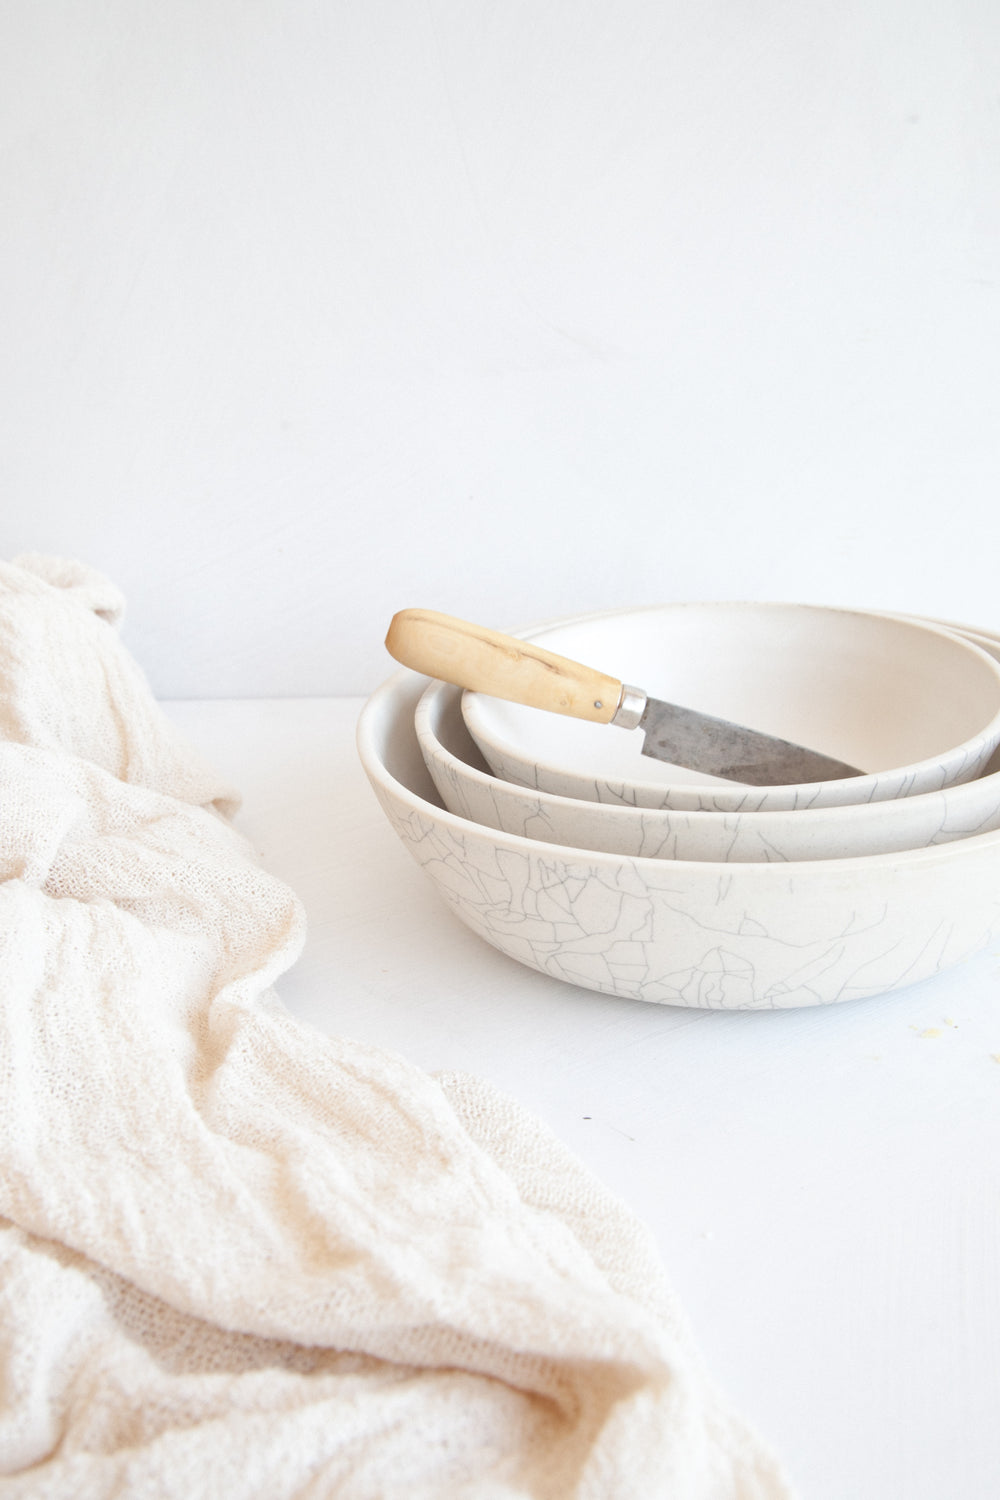 Nesting Serving Bowls / Crackle